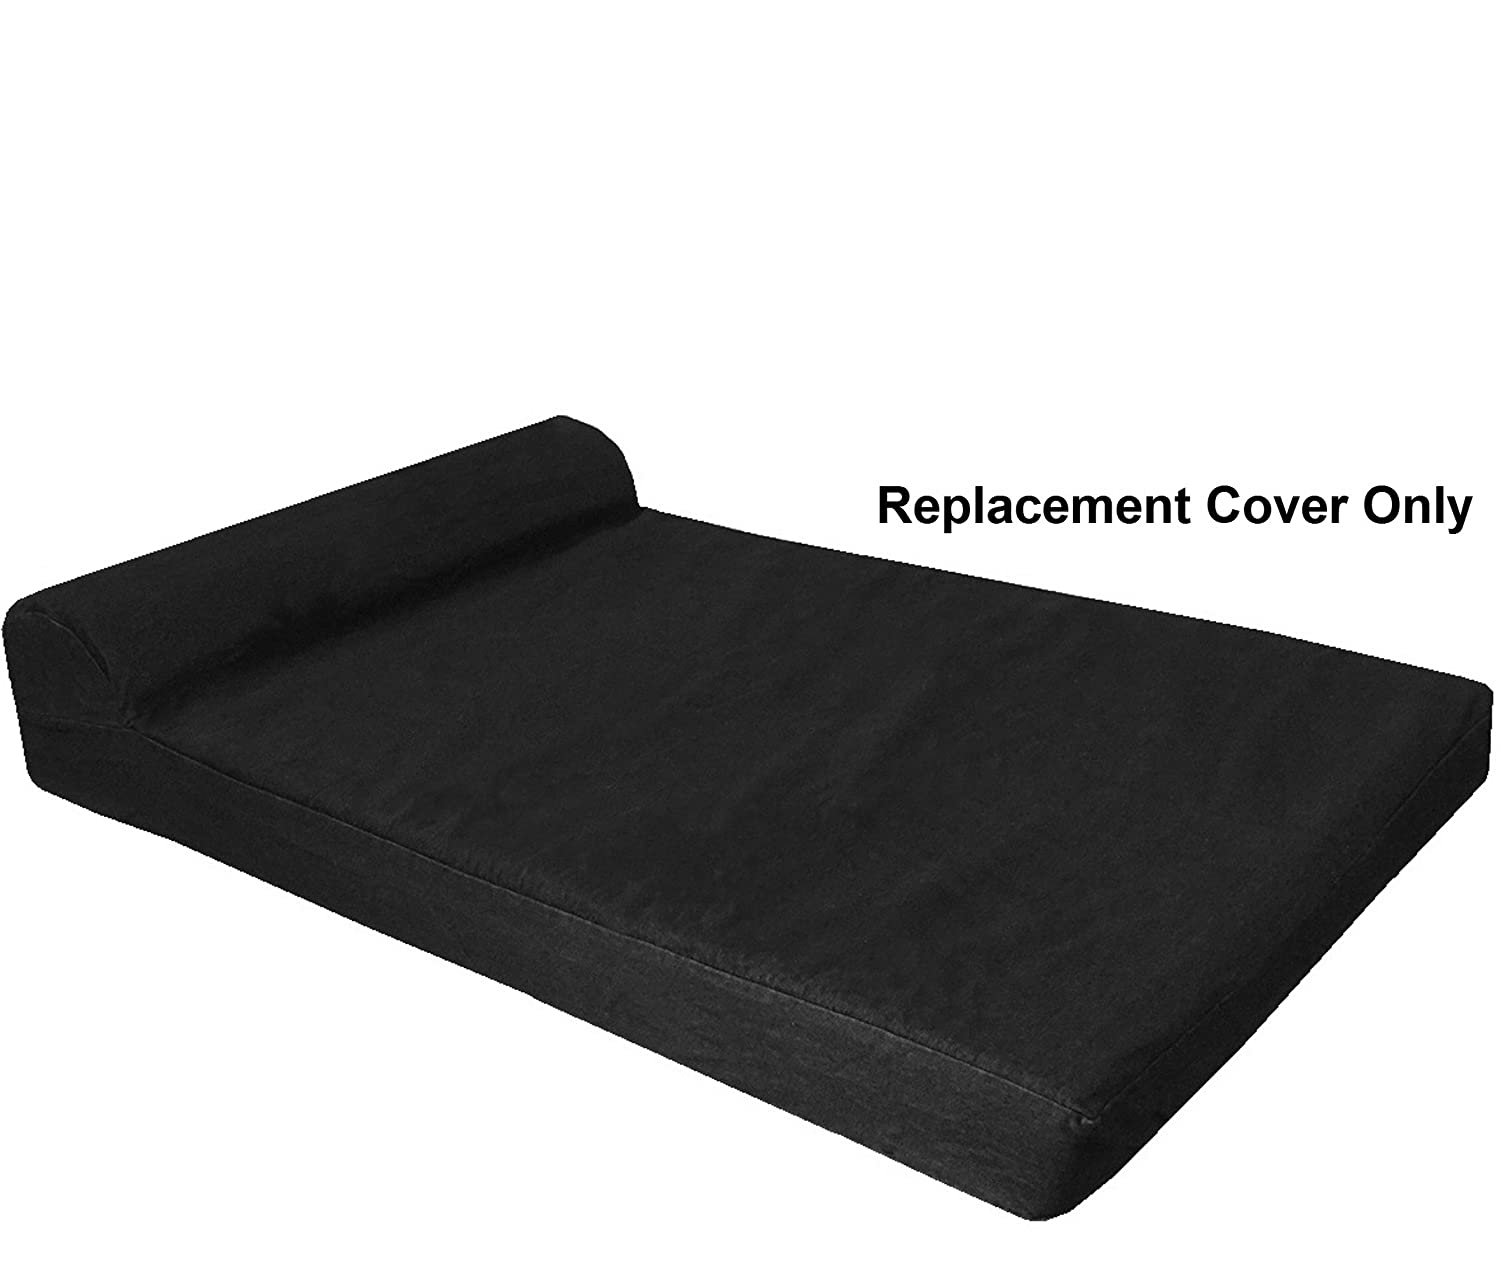 Canvas in Black HeadRest Cover 55\ Canvas in Black HeadRest Cover 55\ Dogbed4less HeadRest Dog Pet Bed Canvas External Cover Replacement Cover only Jumbo 55 X47 X4  Size Black